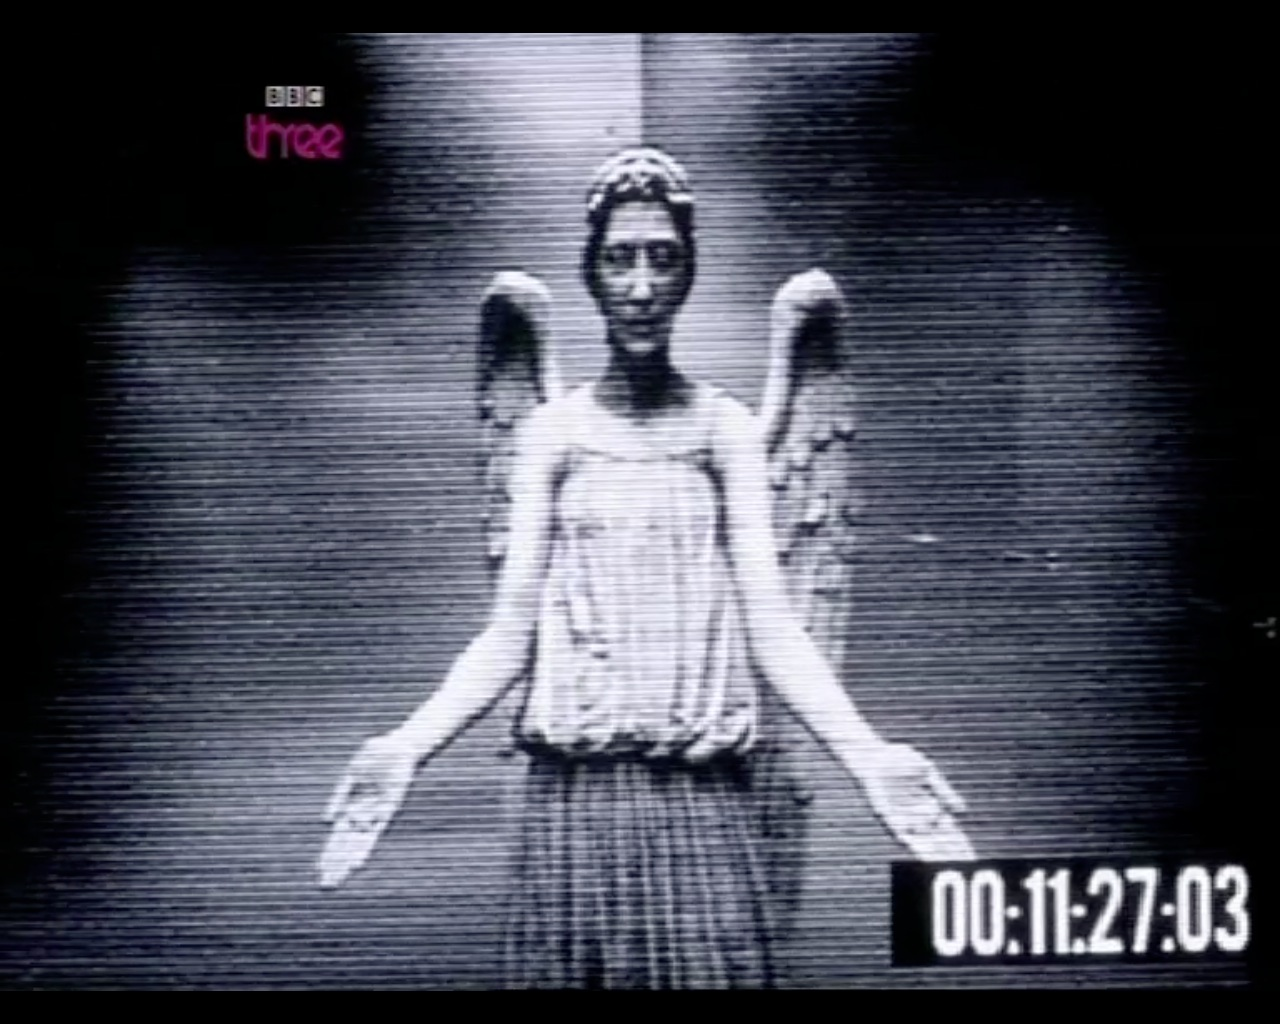 gallery for weeping angels wallpaper set